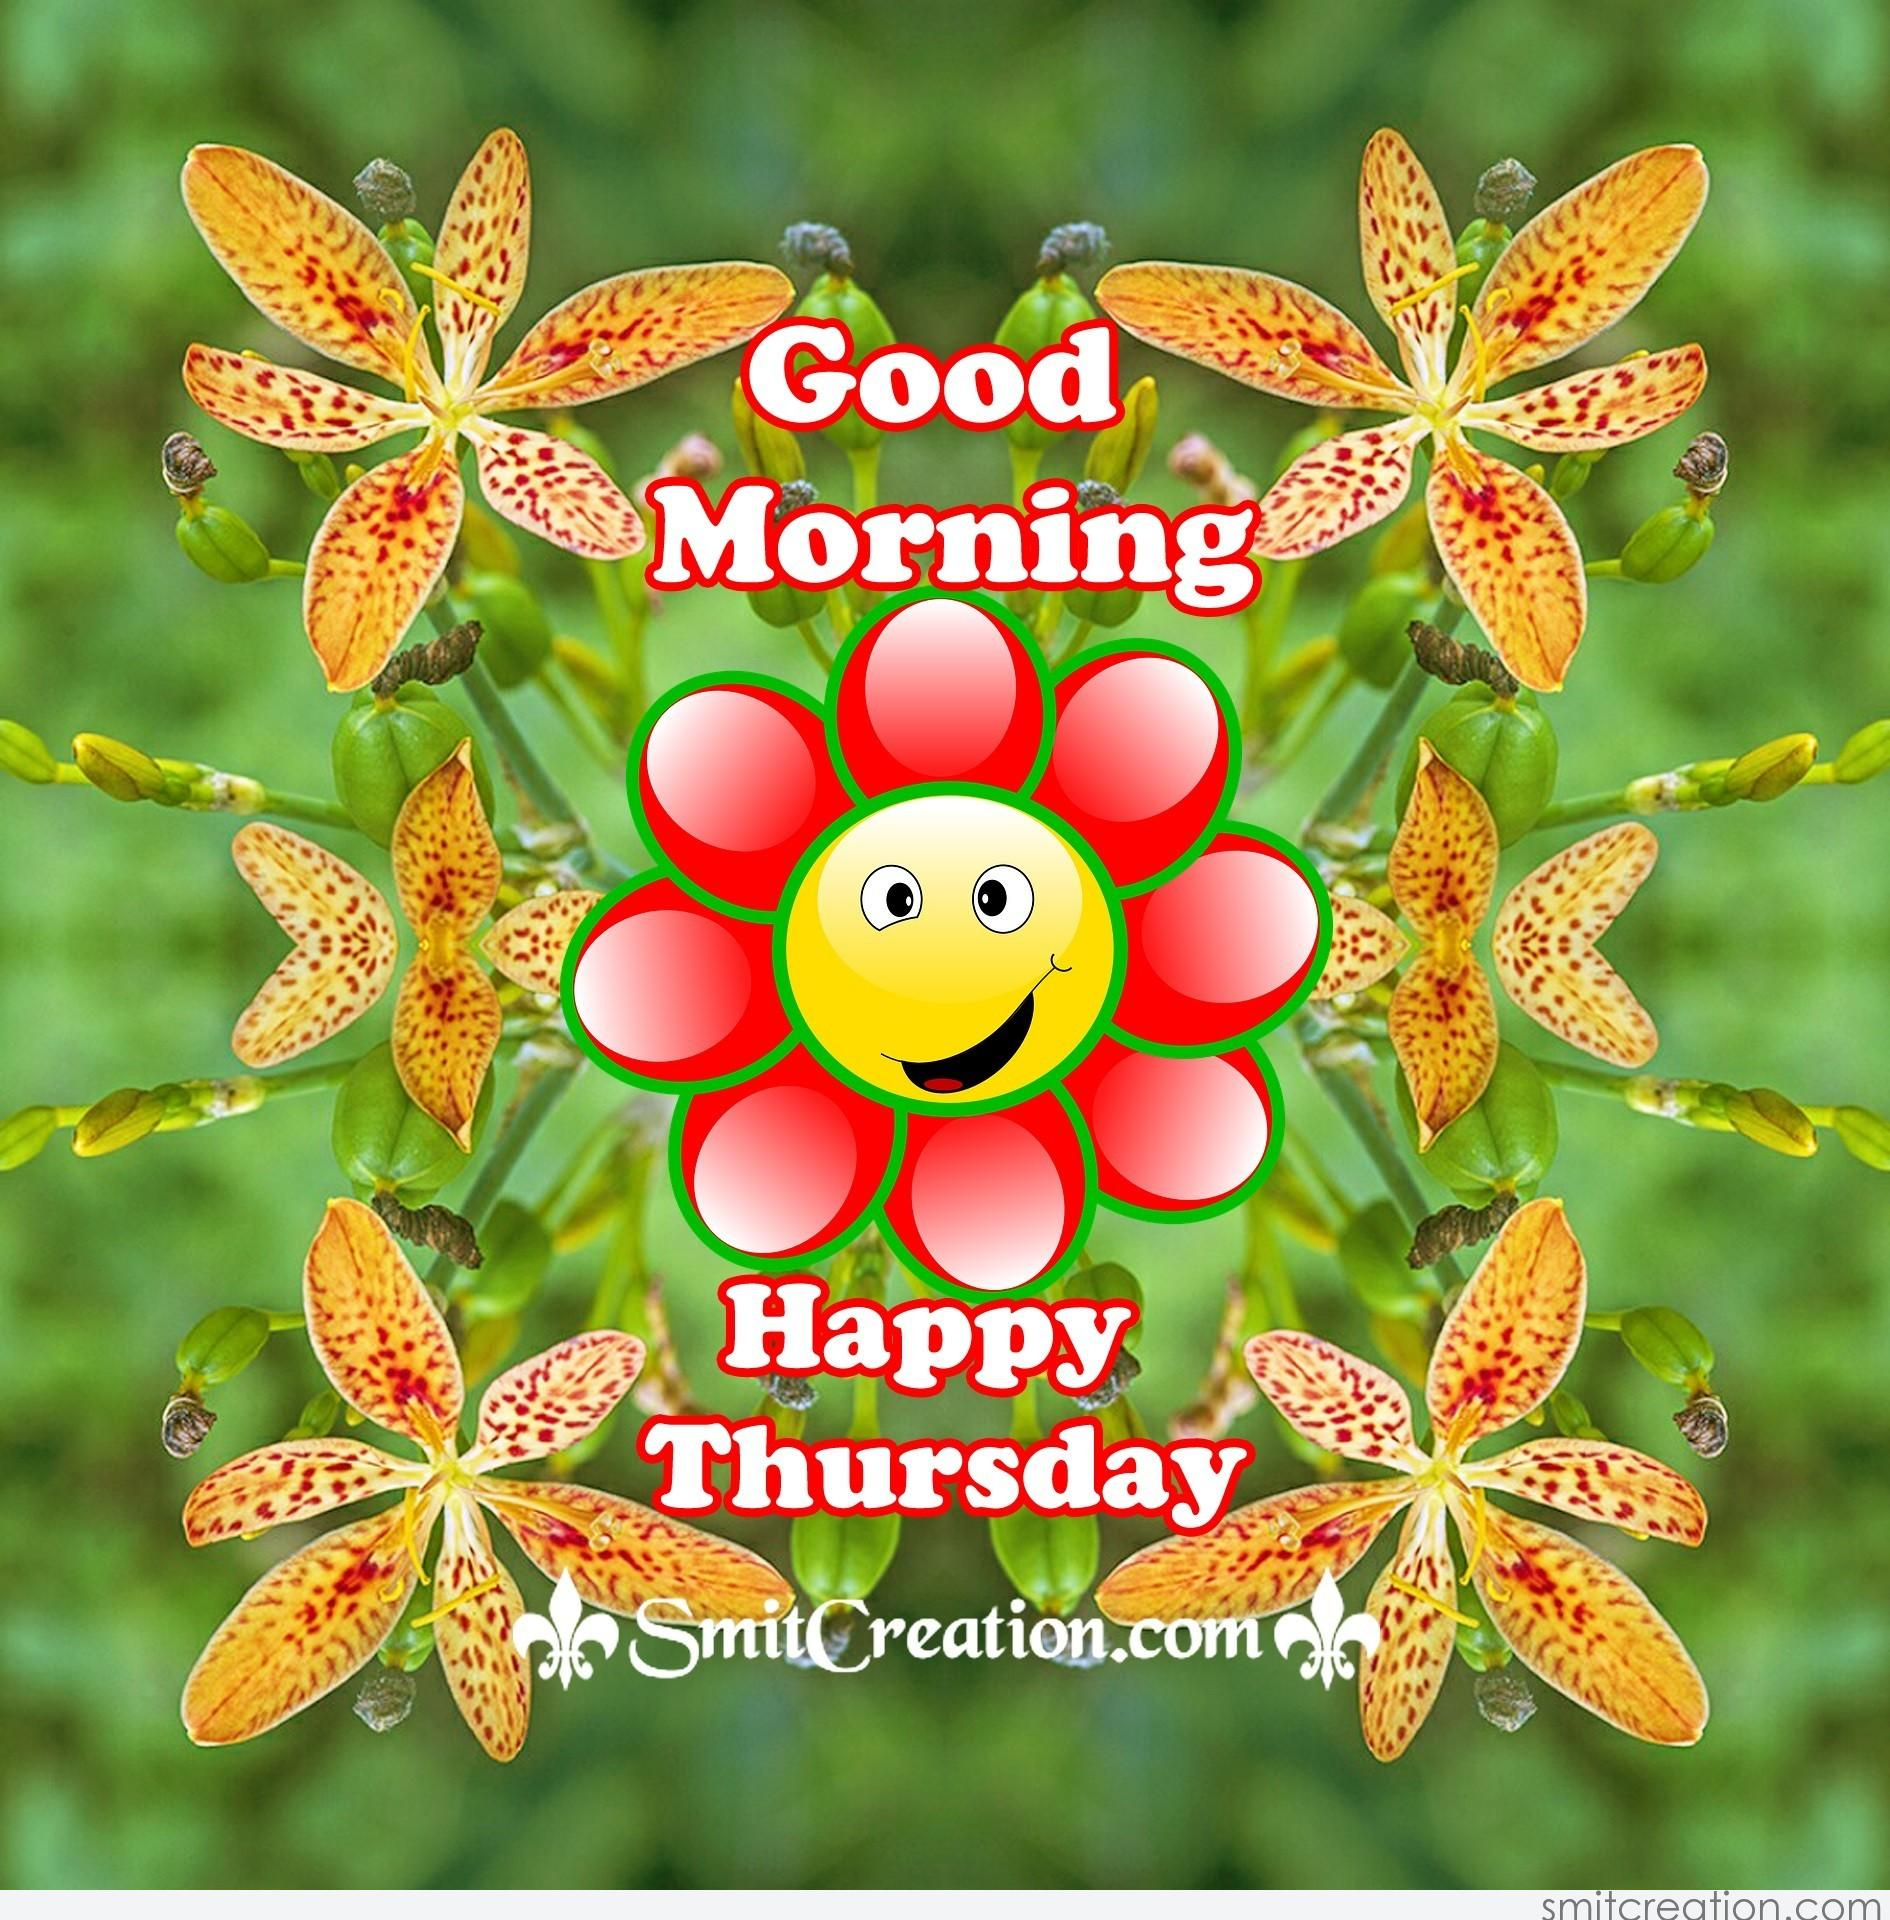 Good Morning Thursday Image : Good morning happy thursday smitcreation